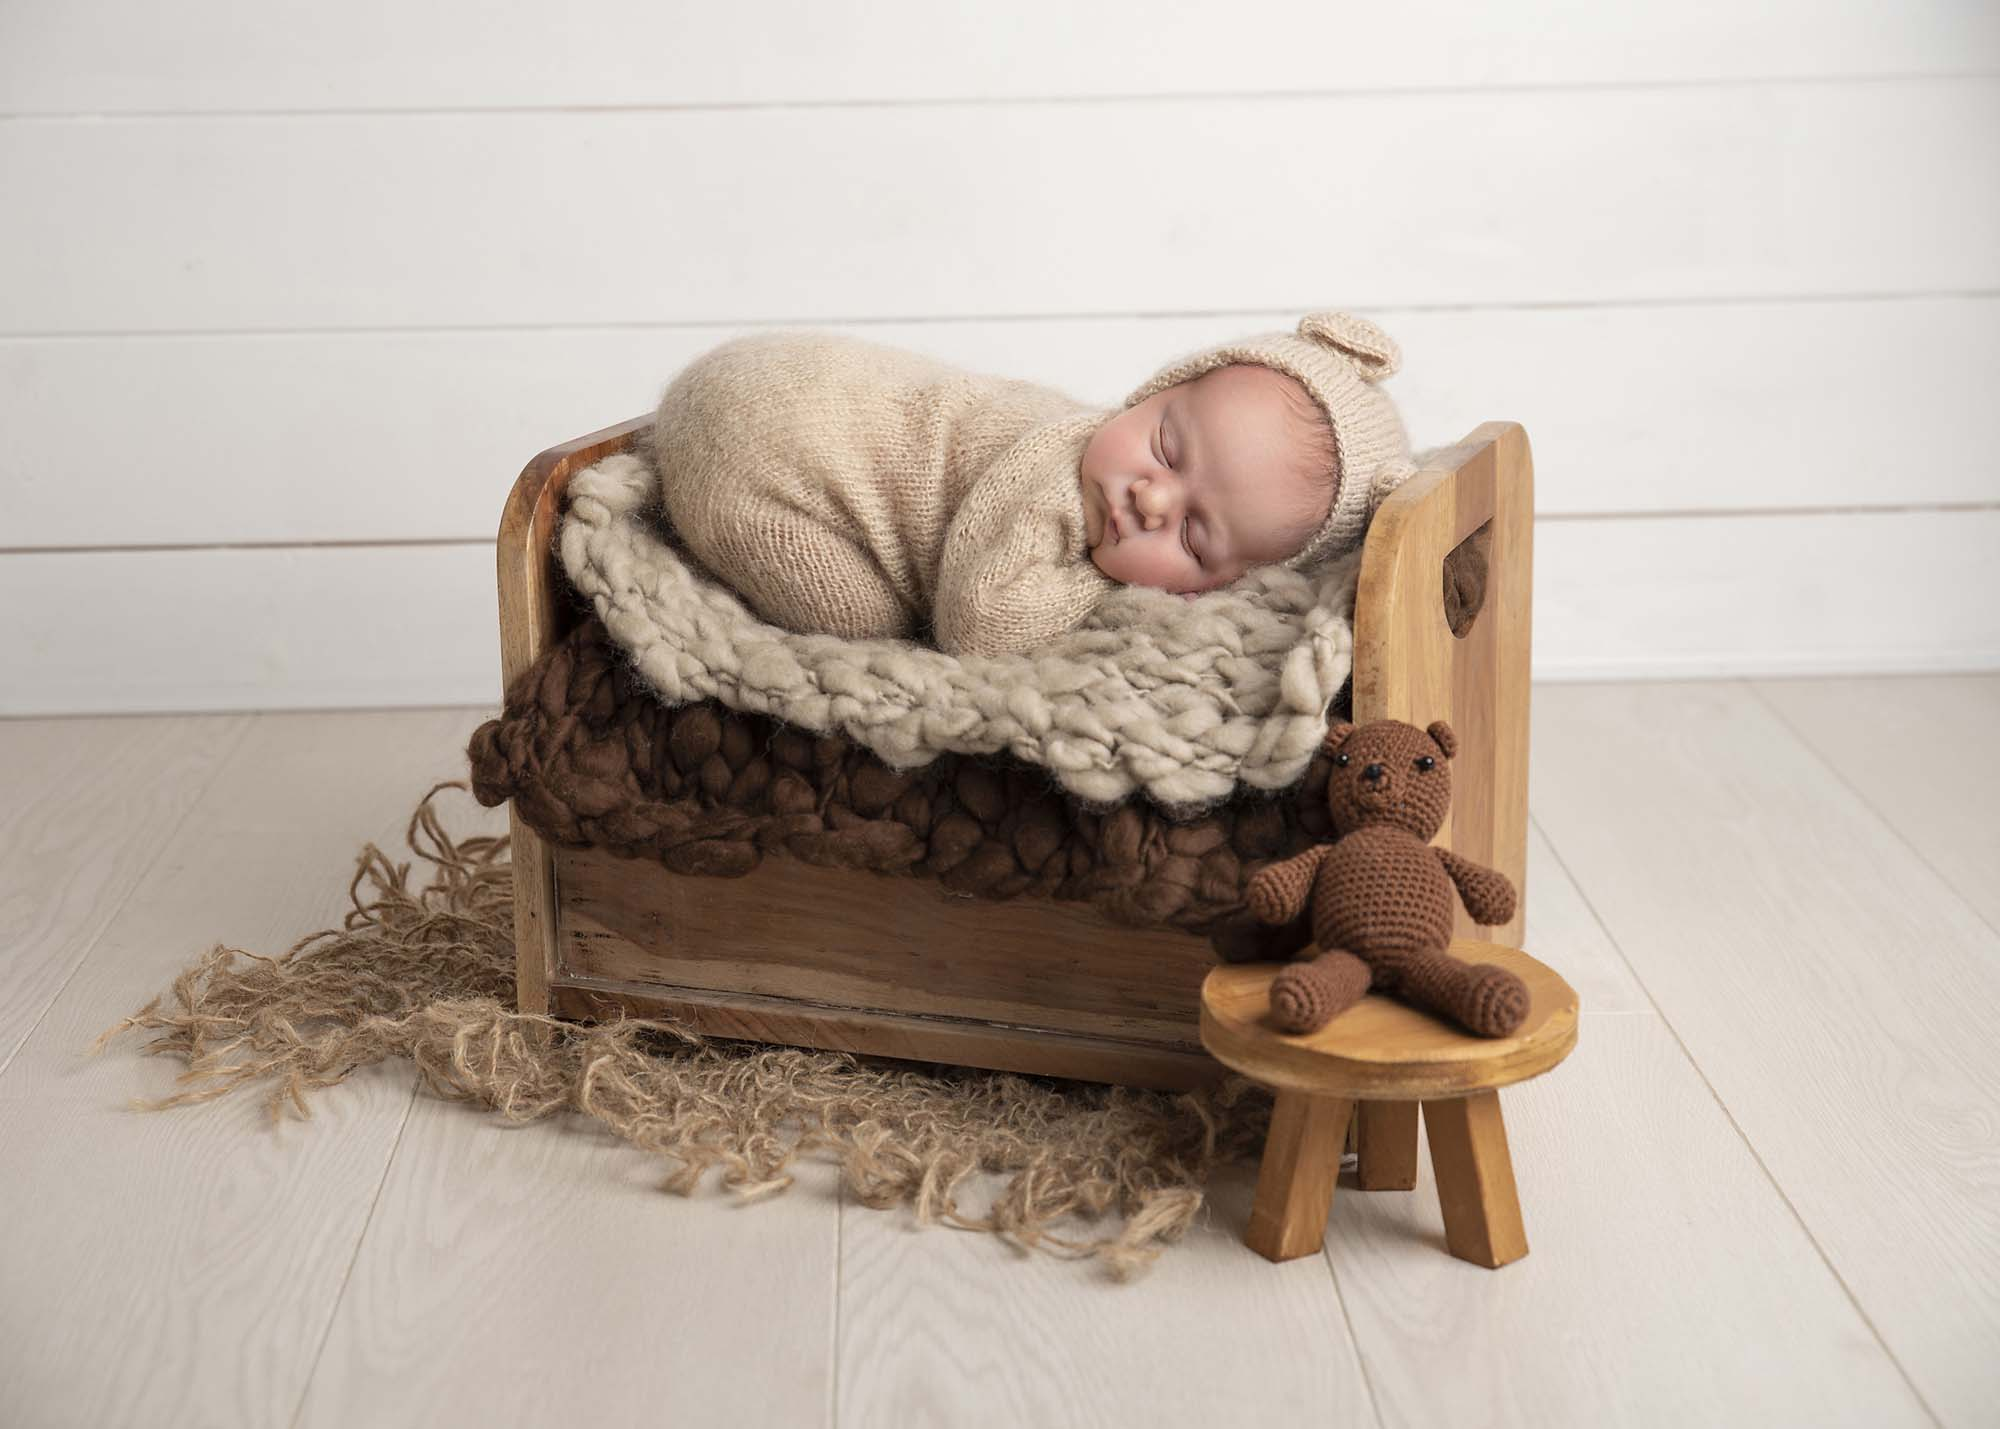 newborn baby boy sleeping on a bed with teddy outfit photographed by Newborn Photographer Manchester